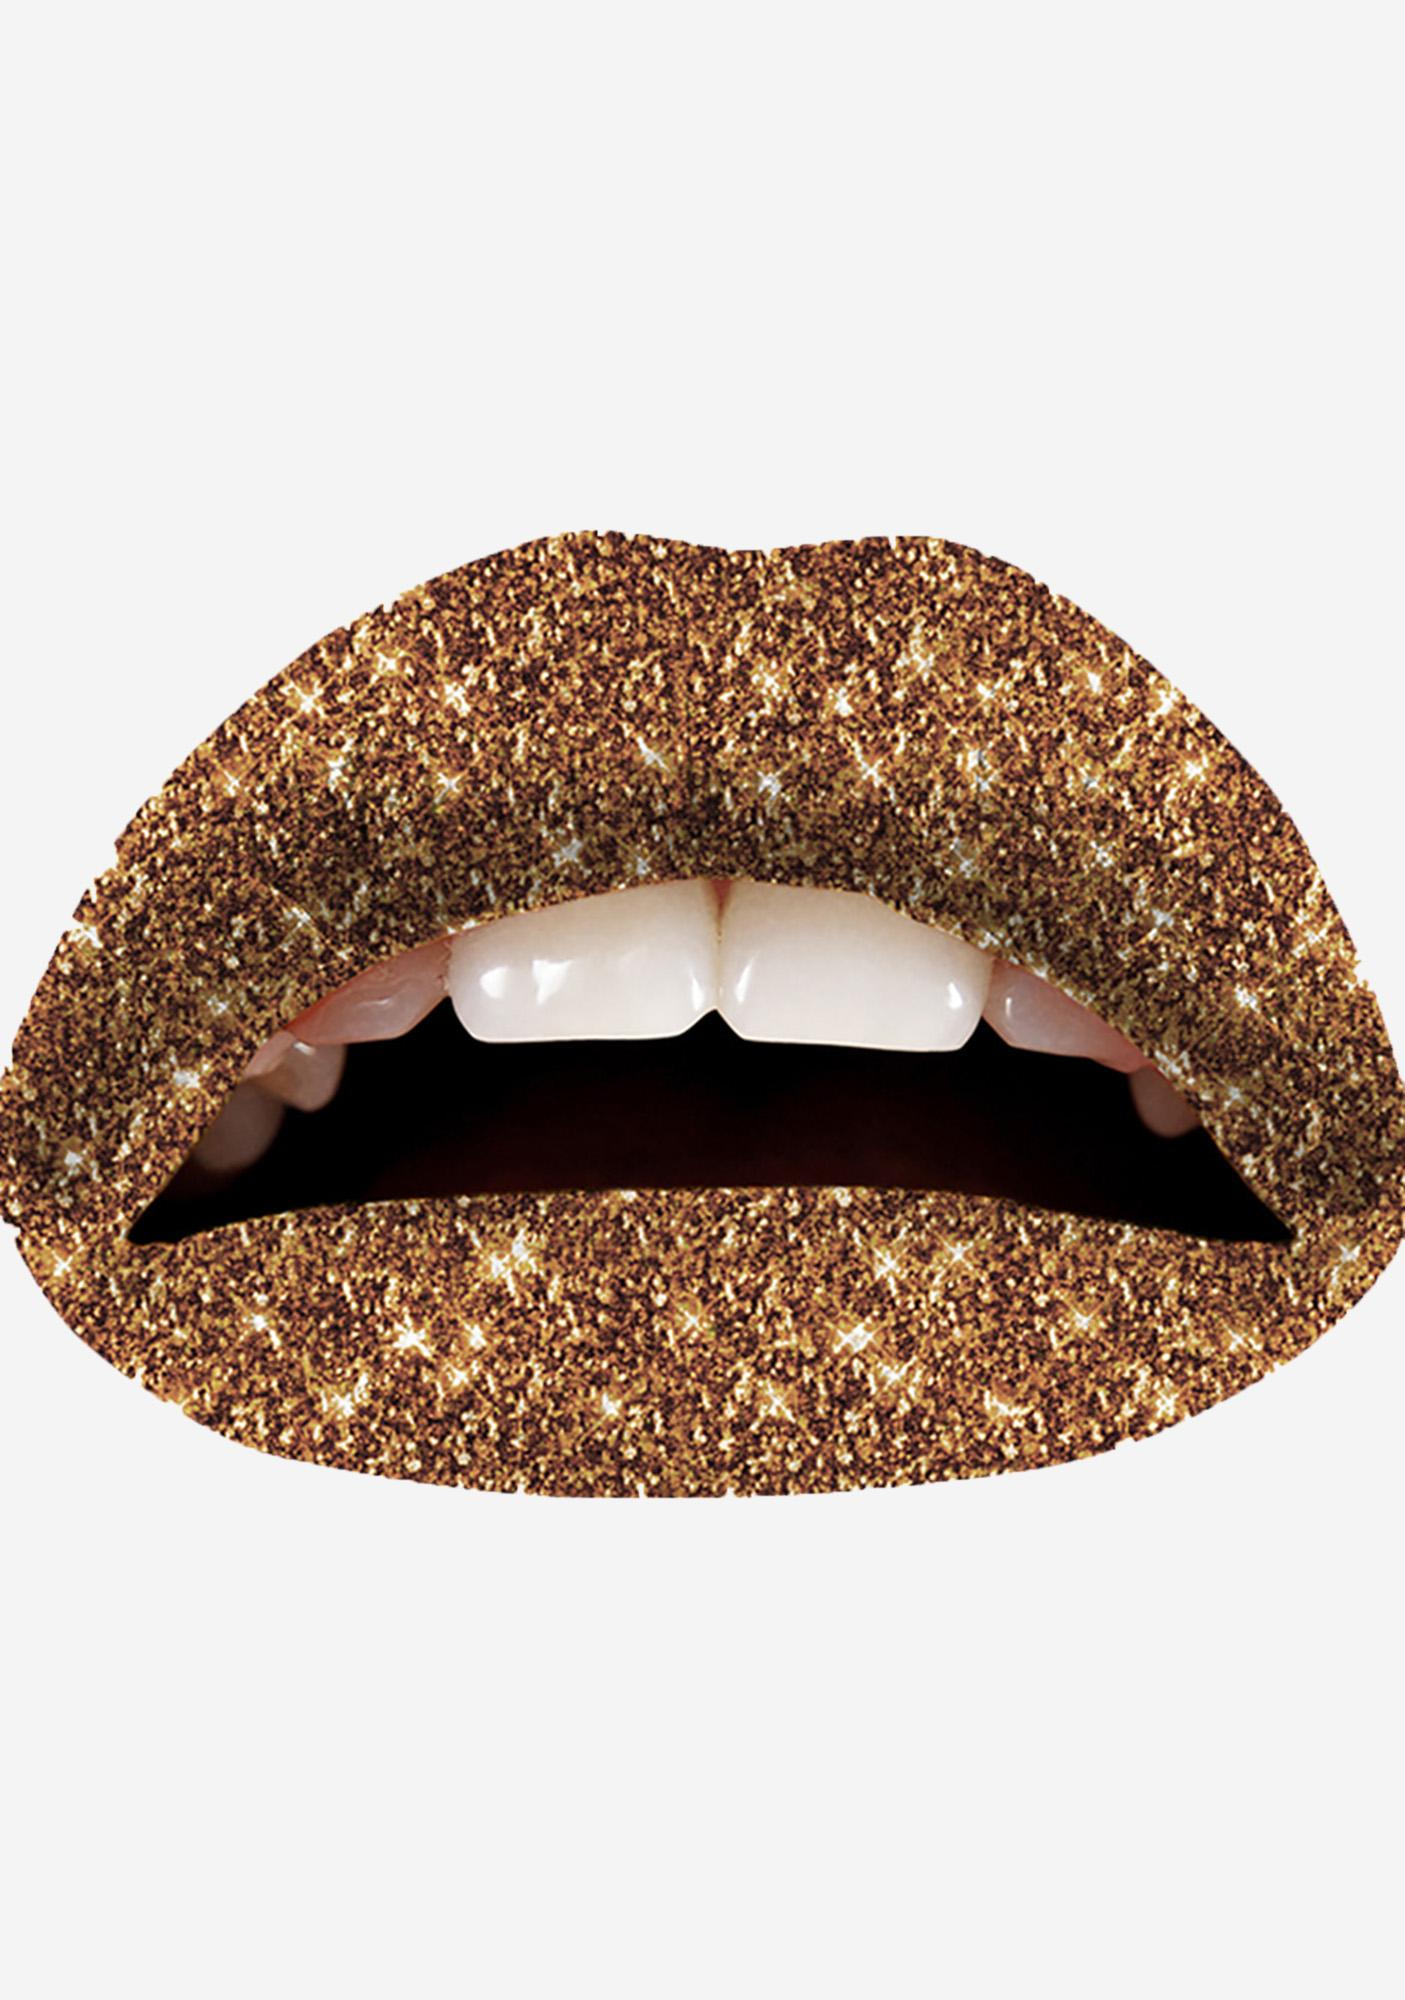 Violent Lips Cinnamon Glitterati Lip Applique